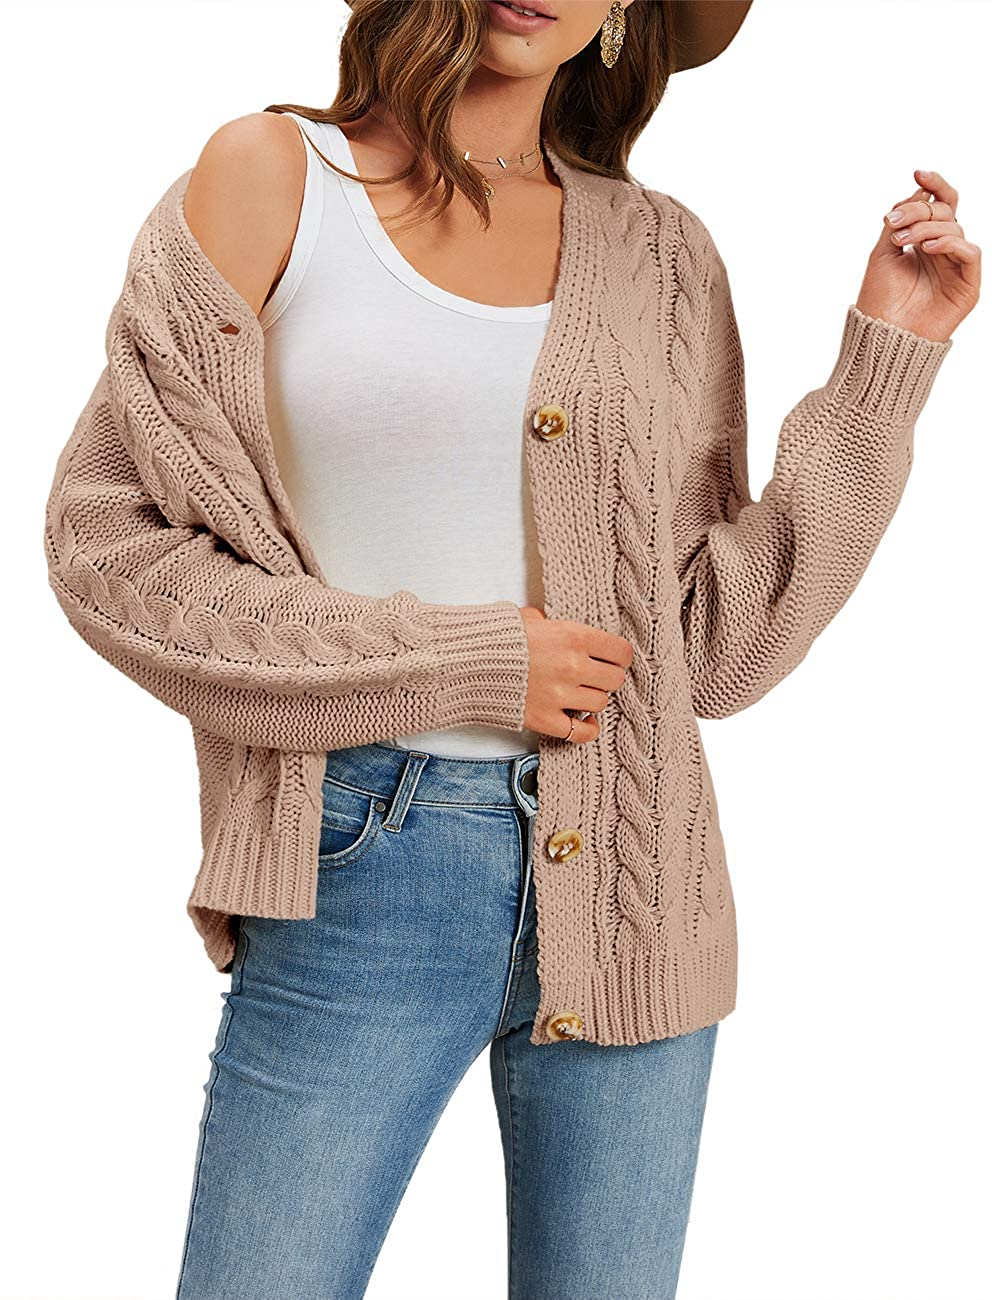 Imily Bela Womens Button Down Cardigans Fall Cable Knit Open Front Slouchy Sweaters Coat Pink